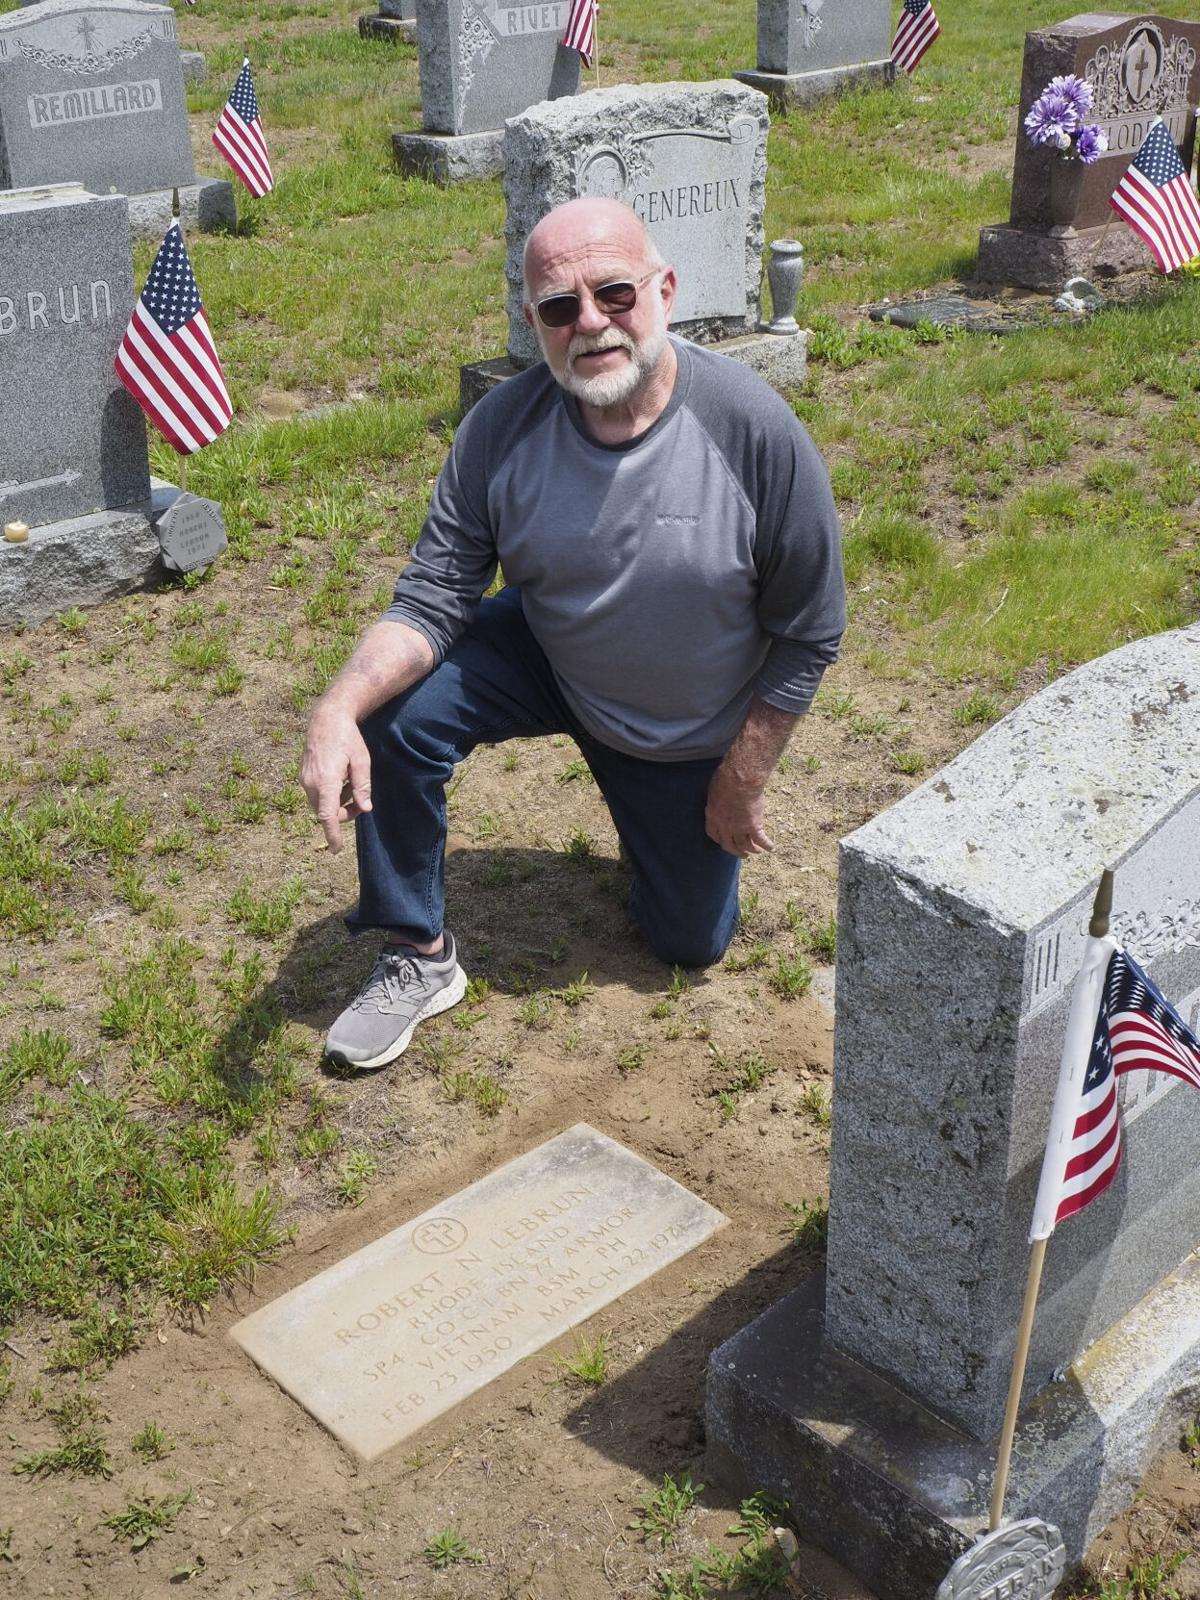 Site unseen: Vietnam vet works to ensure burial marker remains visible for friend killed in action